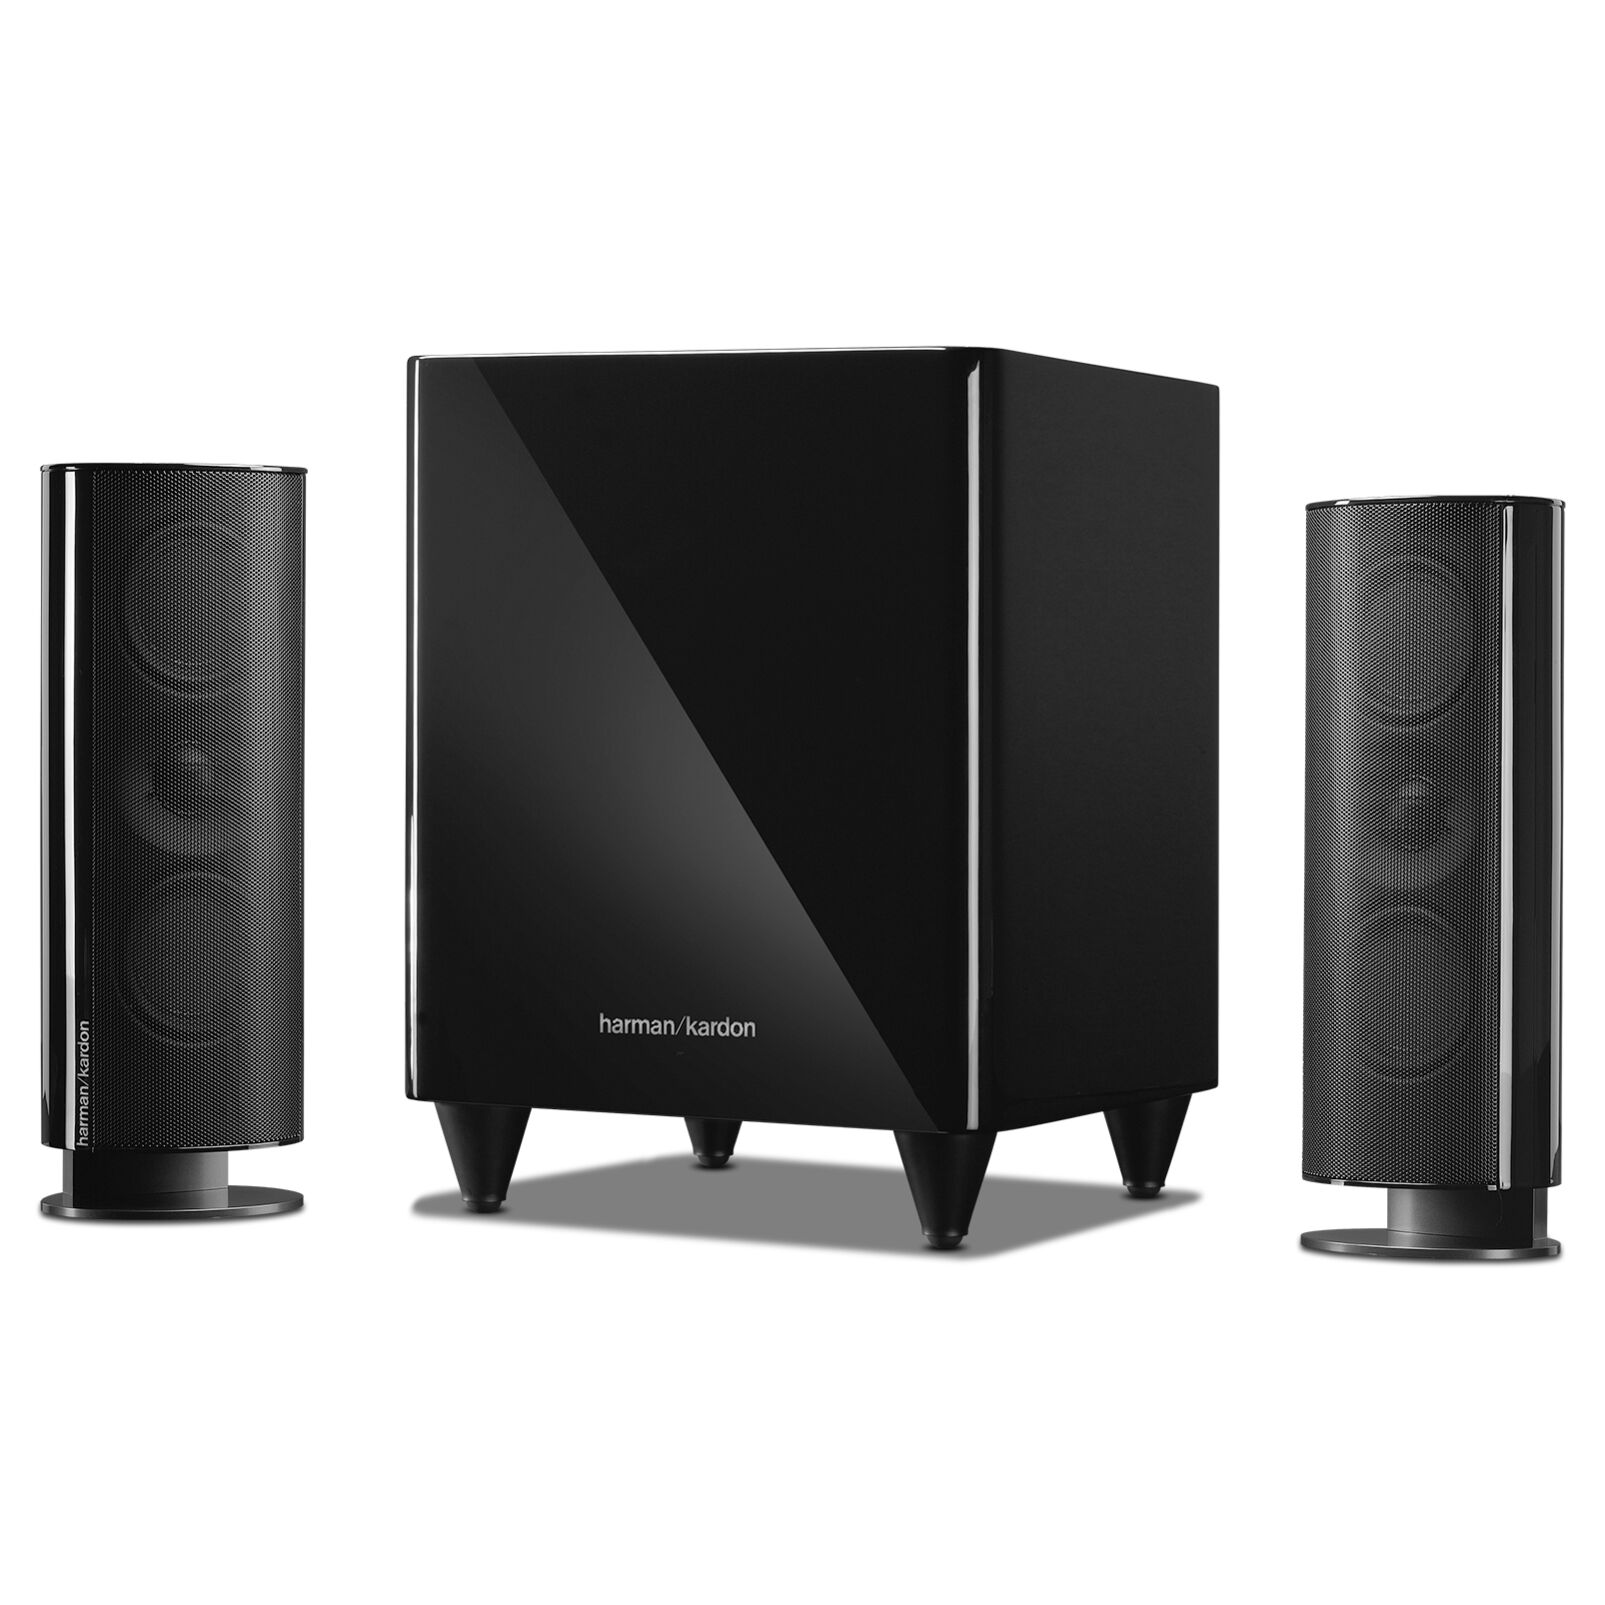 harman kardon HKTS 200 Black-EMEA